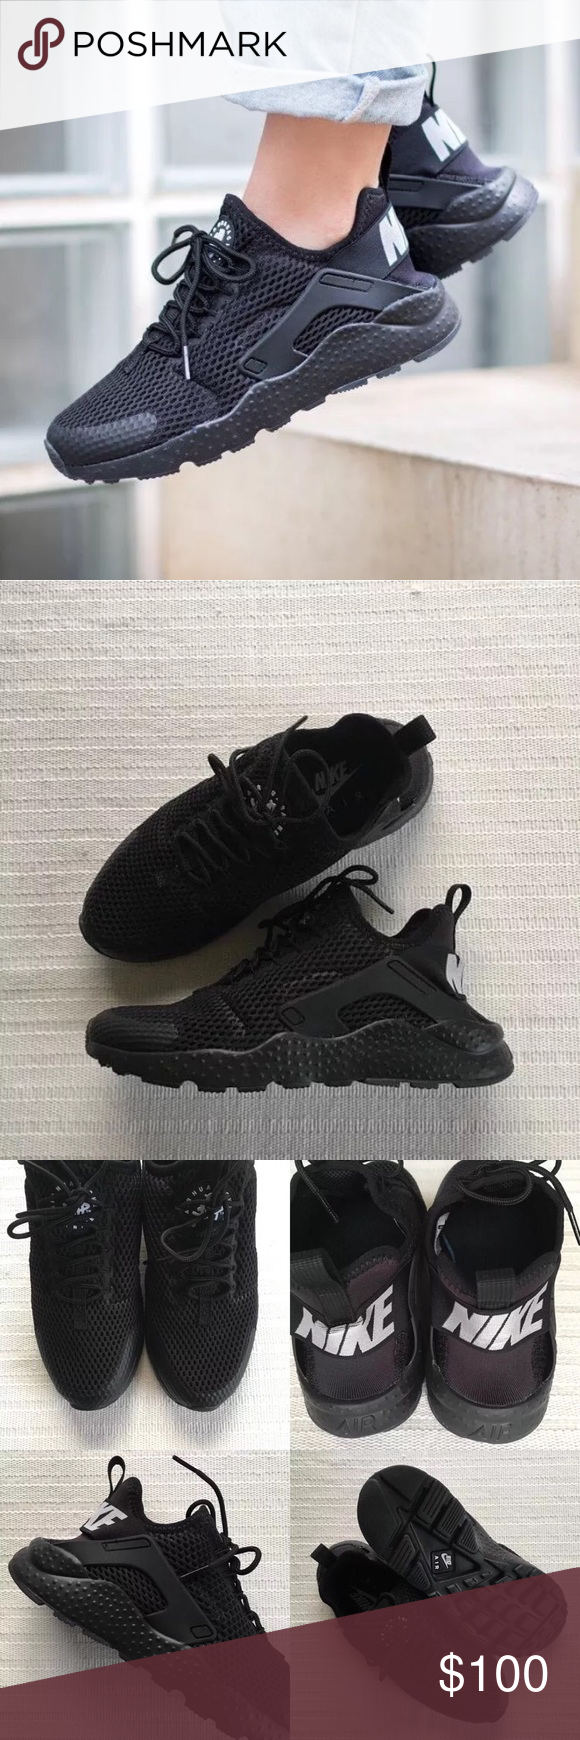 cheap for discount 5673c 0991a Women s Nike Air Huarache Run Ultra Breathe Black Women s Nike Air Huarache  Run Ultra Breathe Black Style Color  833292-001   Women s size 8   NEW in  box ...